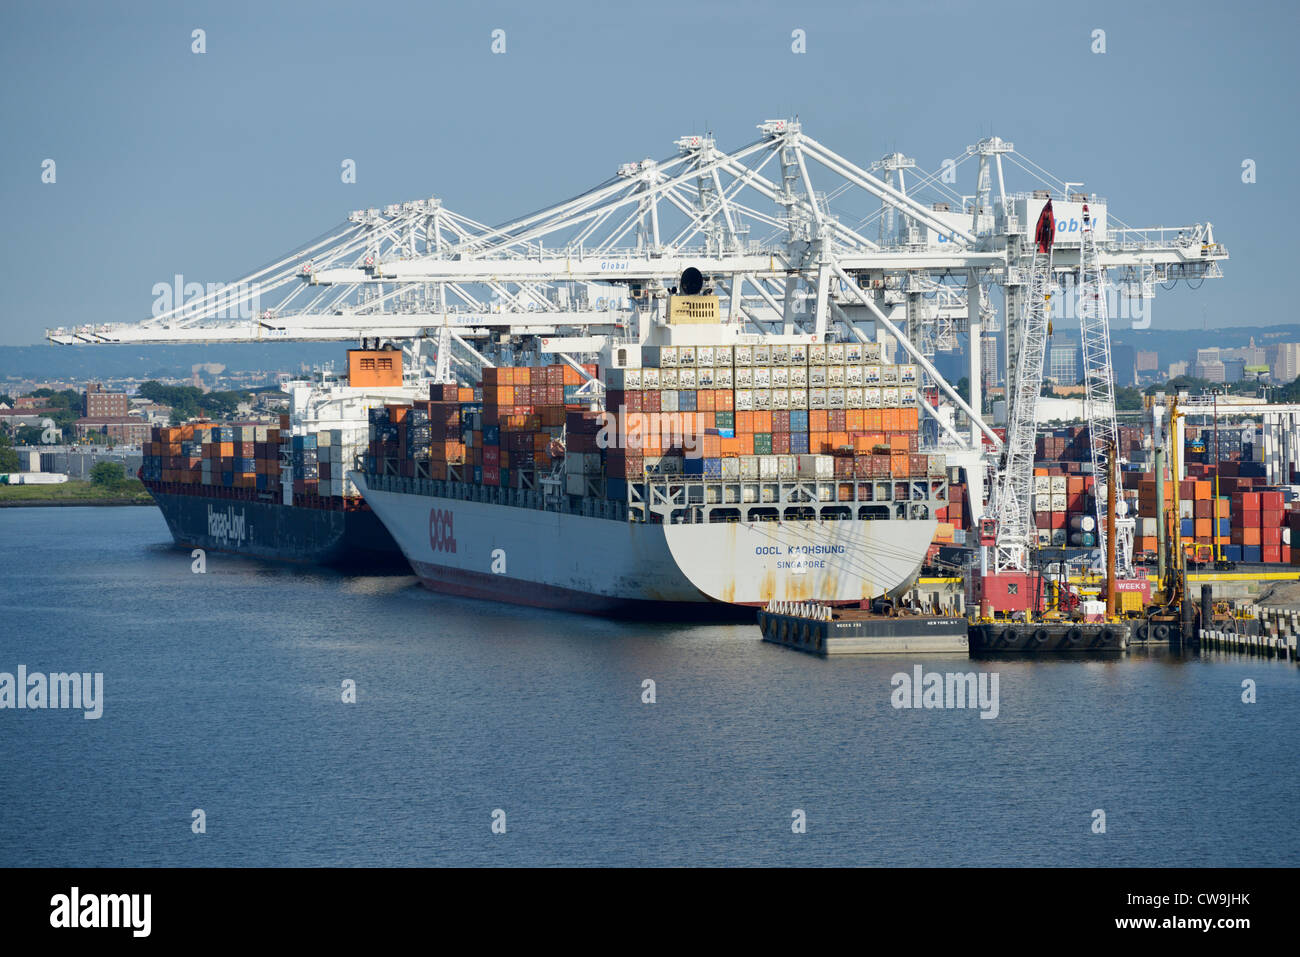 Container ships, Bayonne, New Jersey - Stock Image